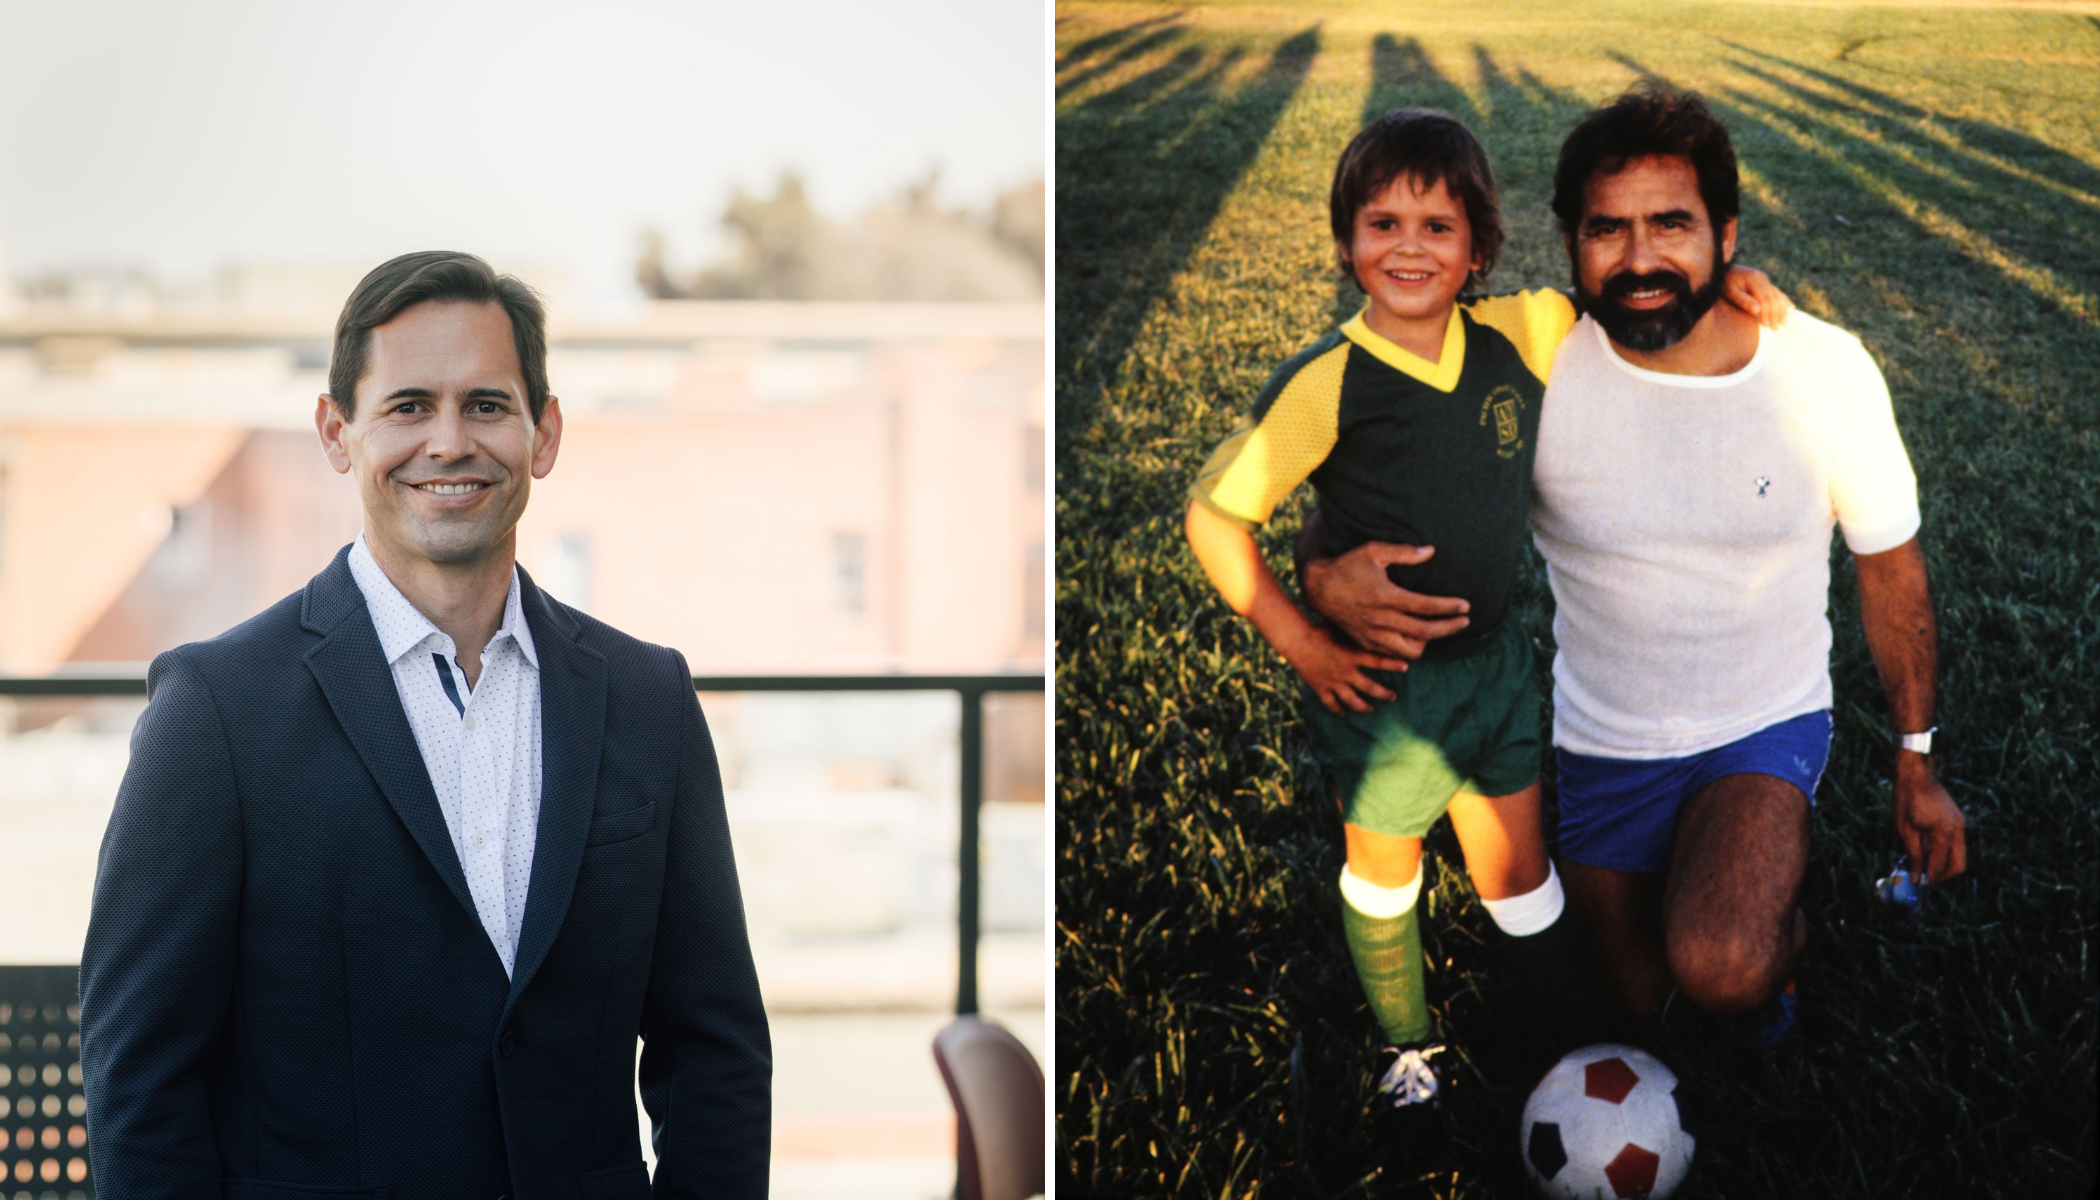 A man in a suit smiles next to a picture of a man kneeling next to his son who is in a soccer uniform.